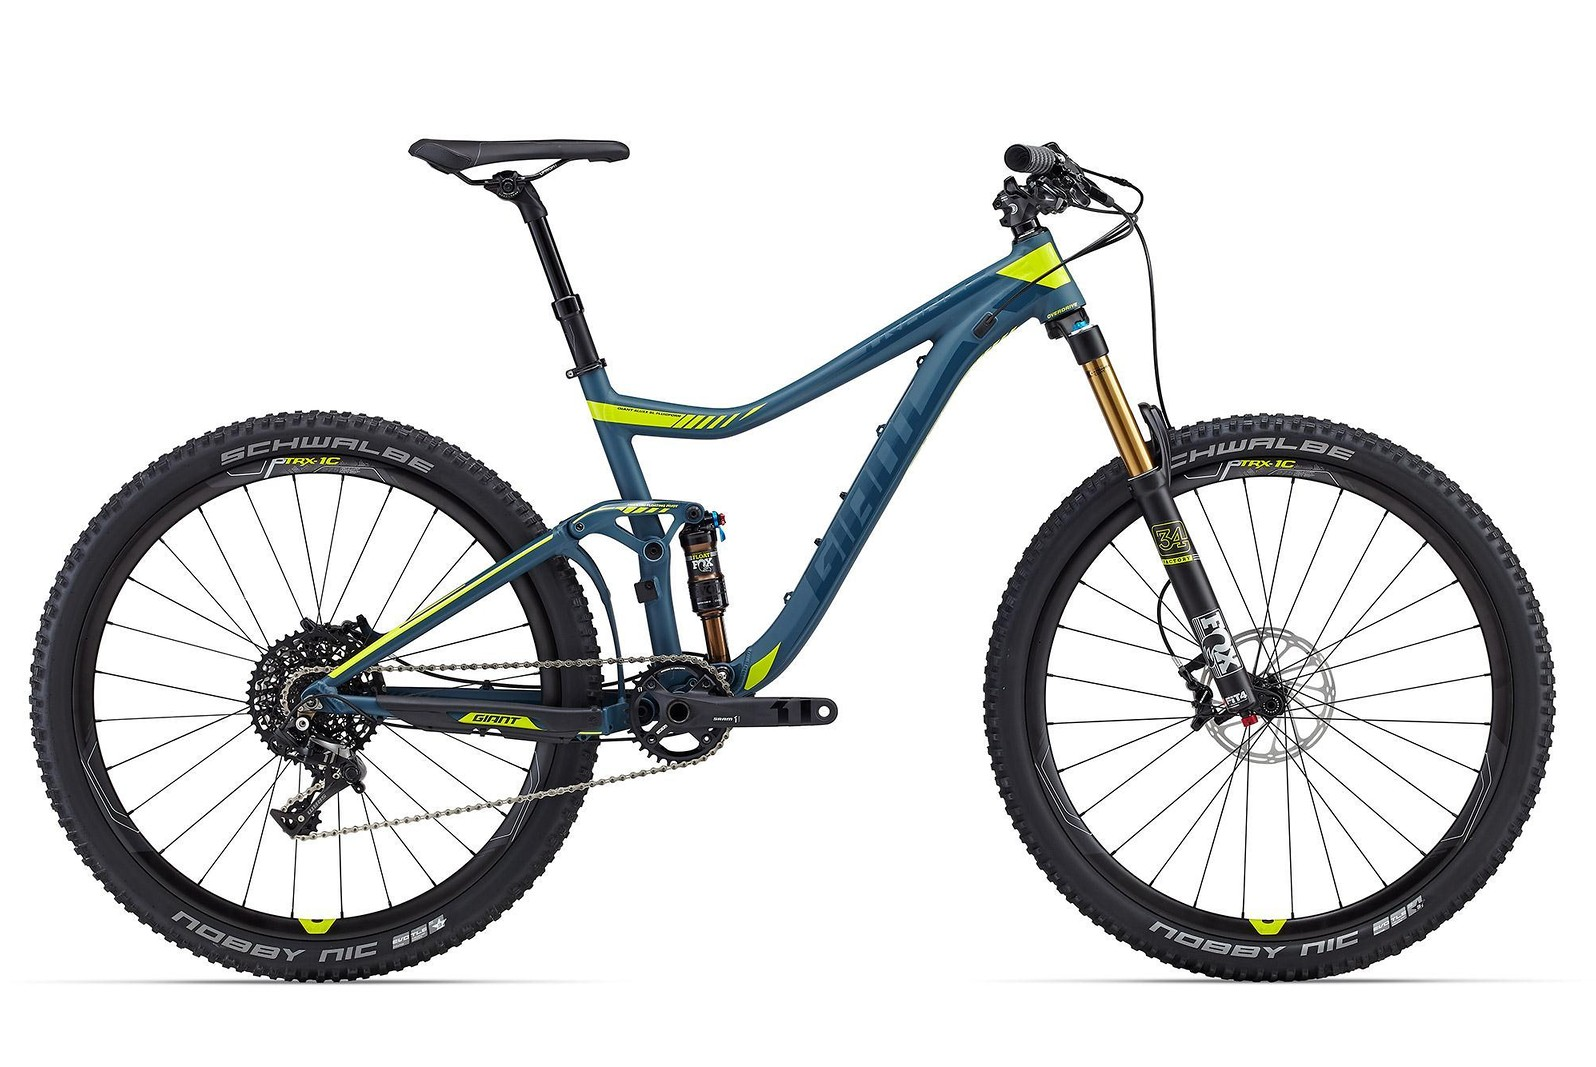 2016 Giant Trance 27.5 1 Bike Trance-275-1-Grayish-Green